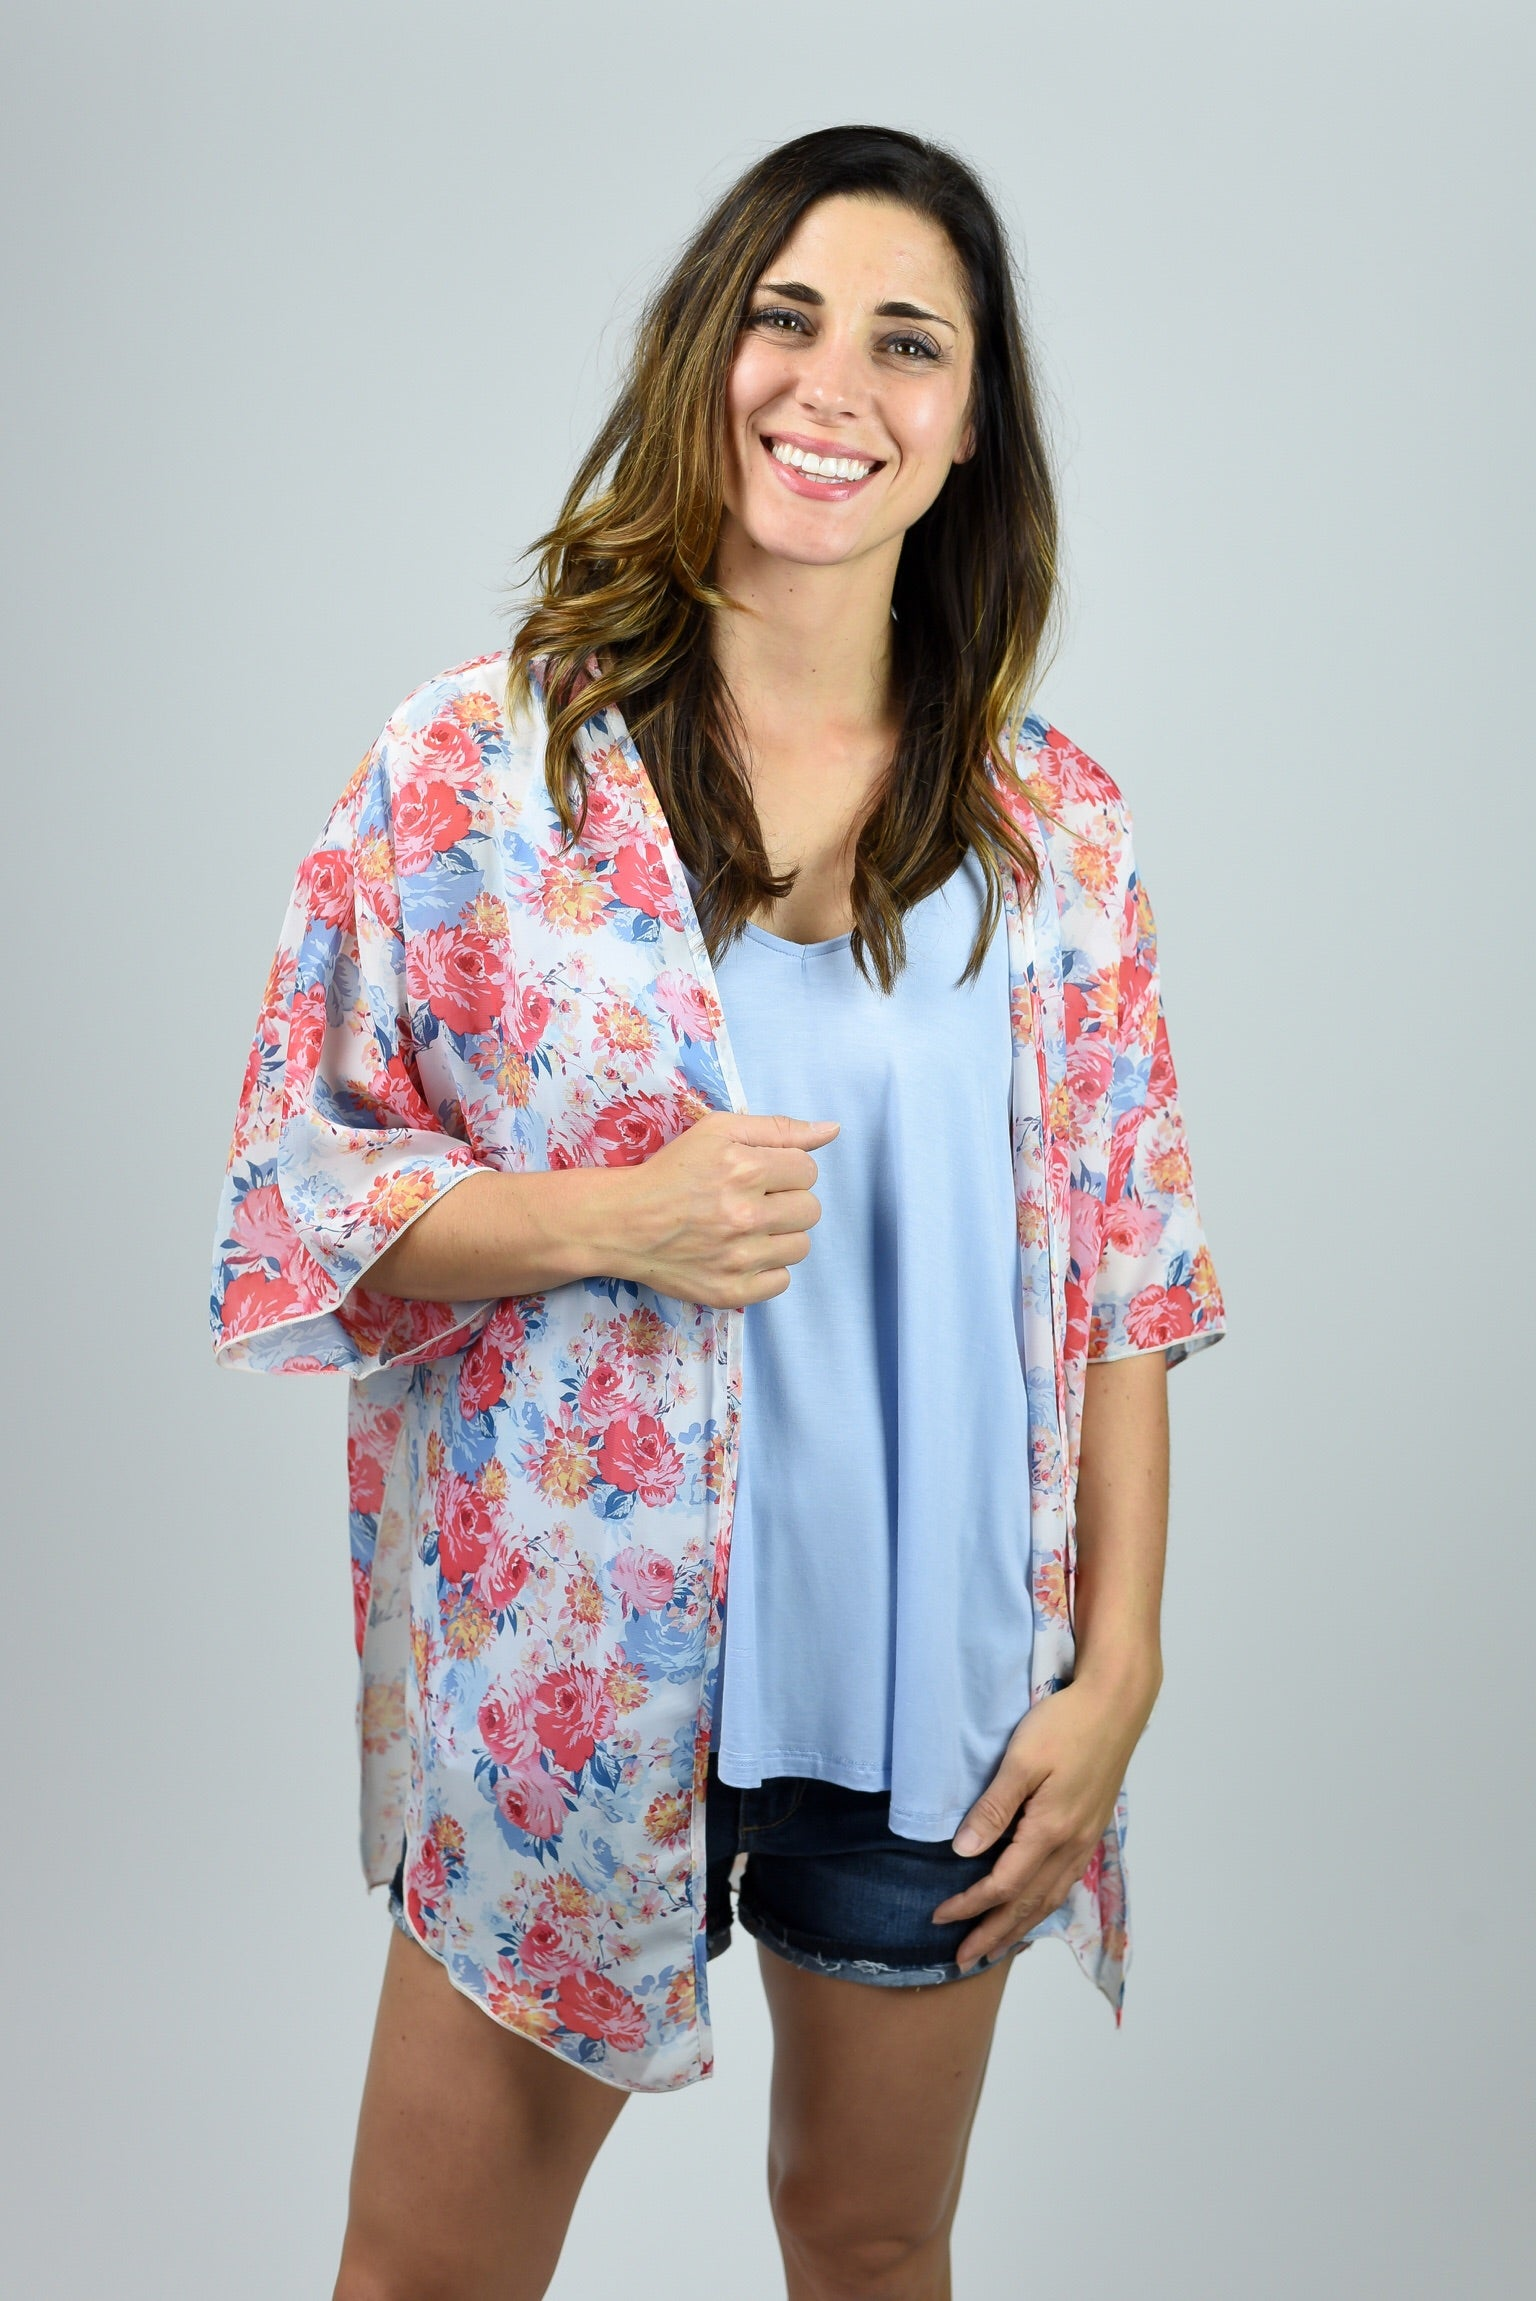 Blooming at Sunrise Floral Kimono